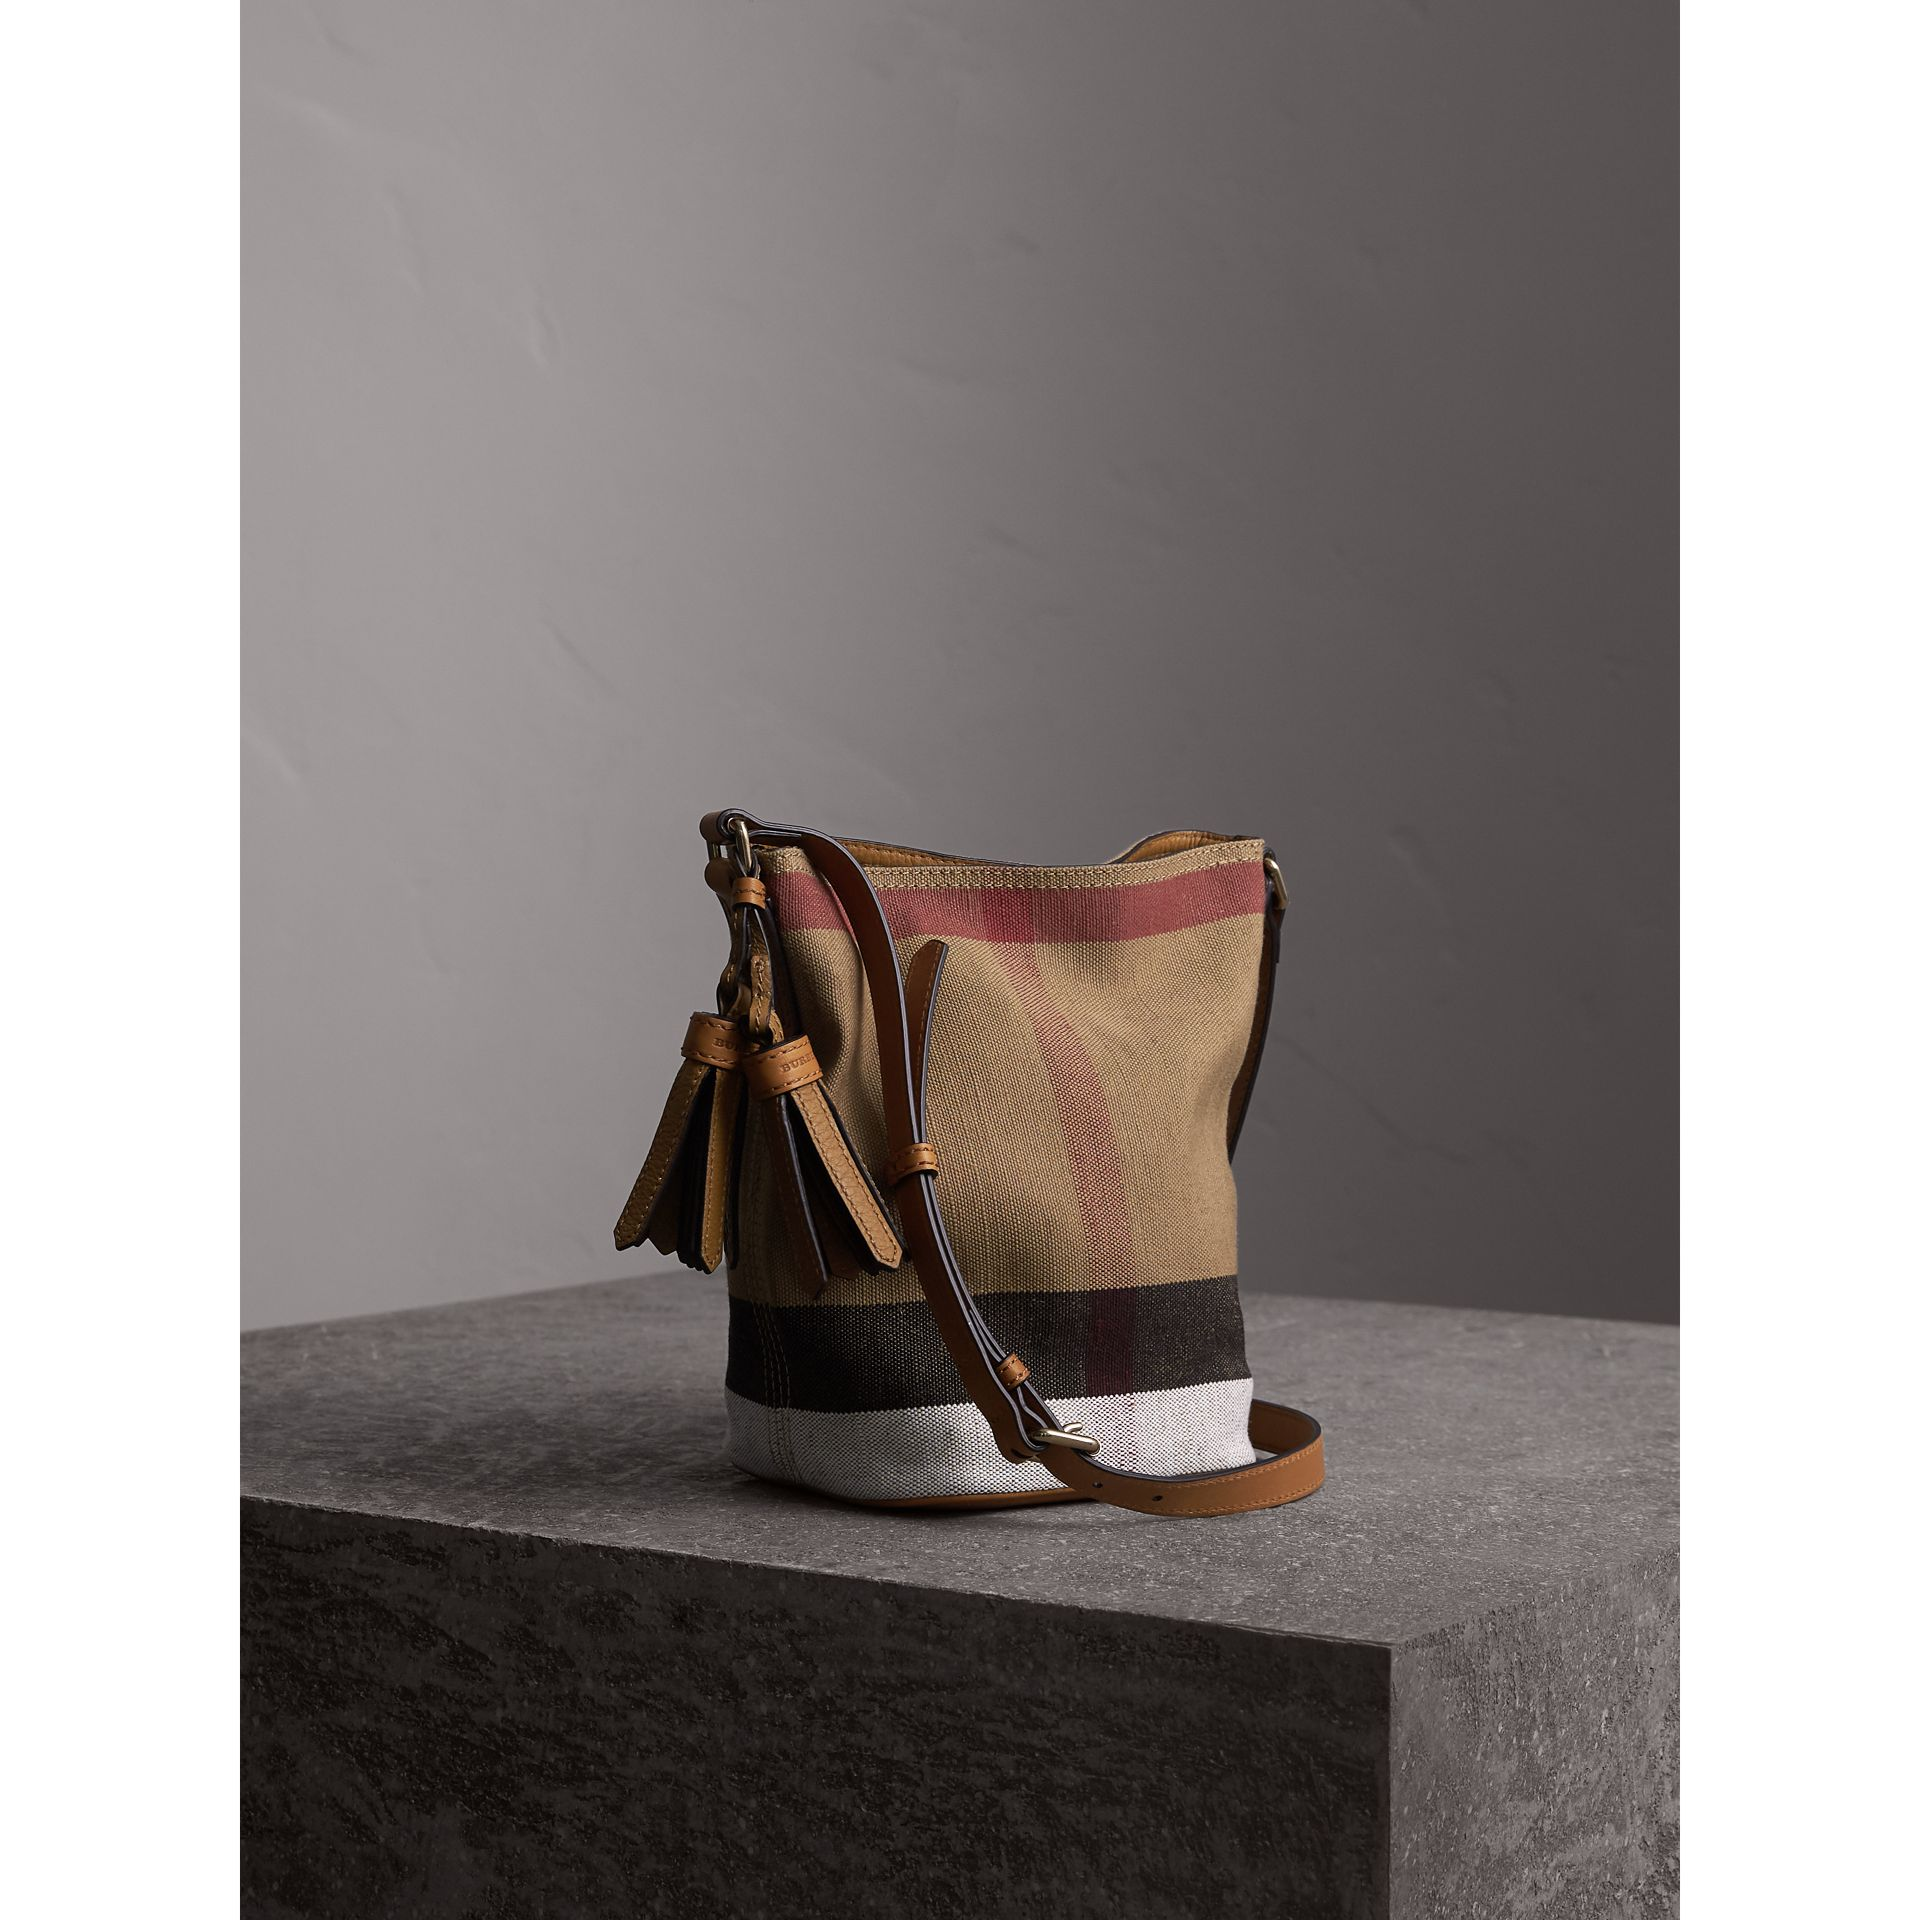 The Ashby piccola con pelle e motivo Canvas check (Marrone Cuoio) - Donna | Burberry - immagine della galleria 7